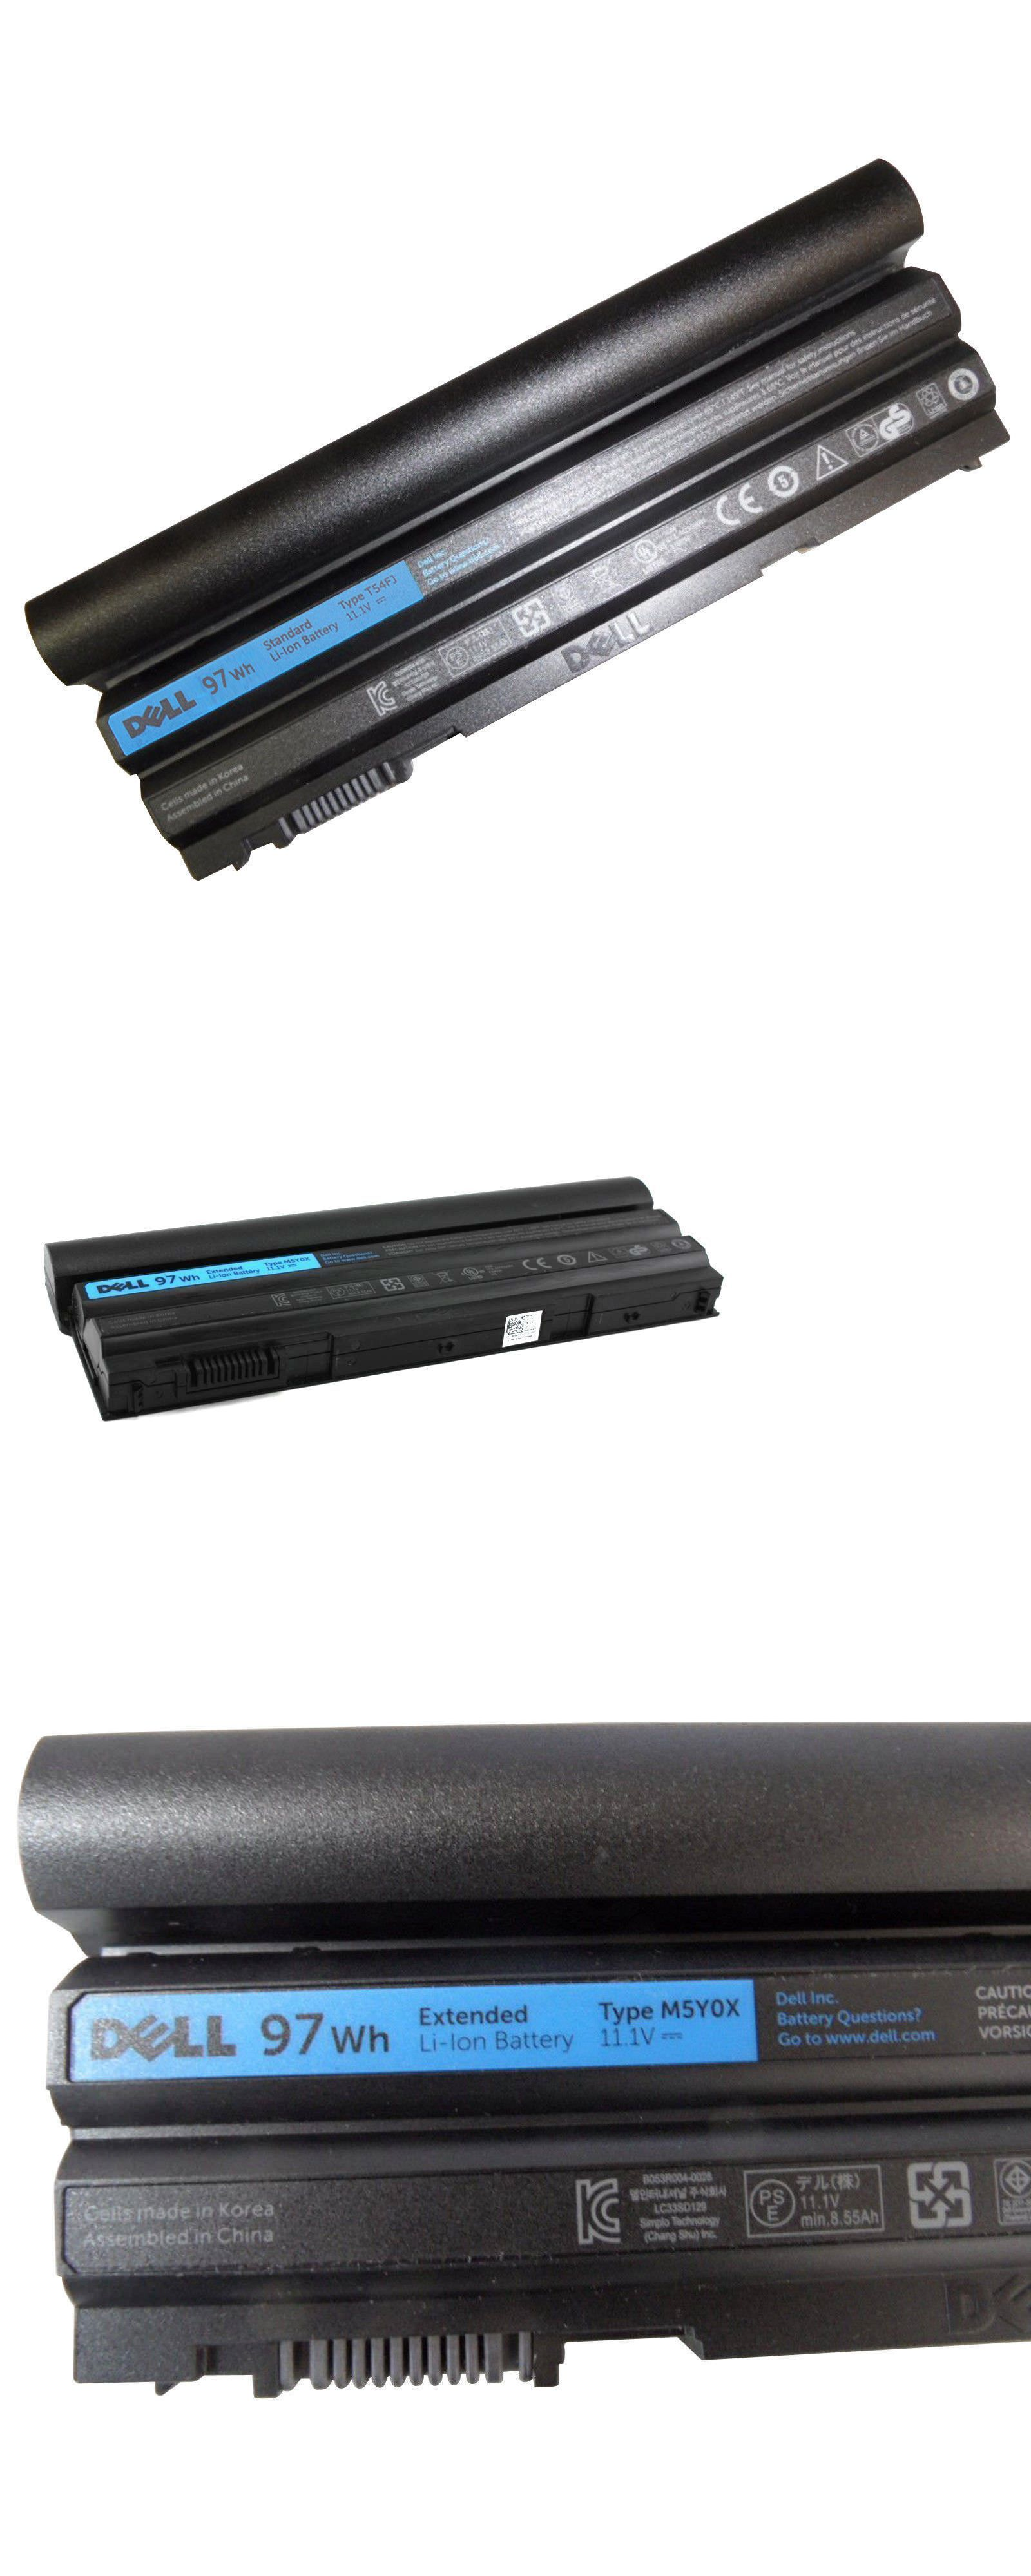 Laptop Batteries 14295: Genuine M5y0x Battery For Dell